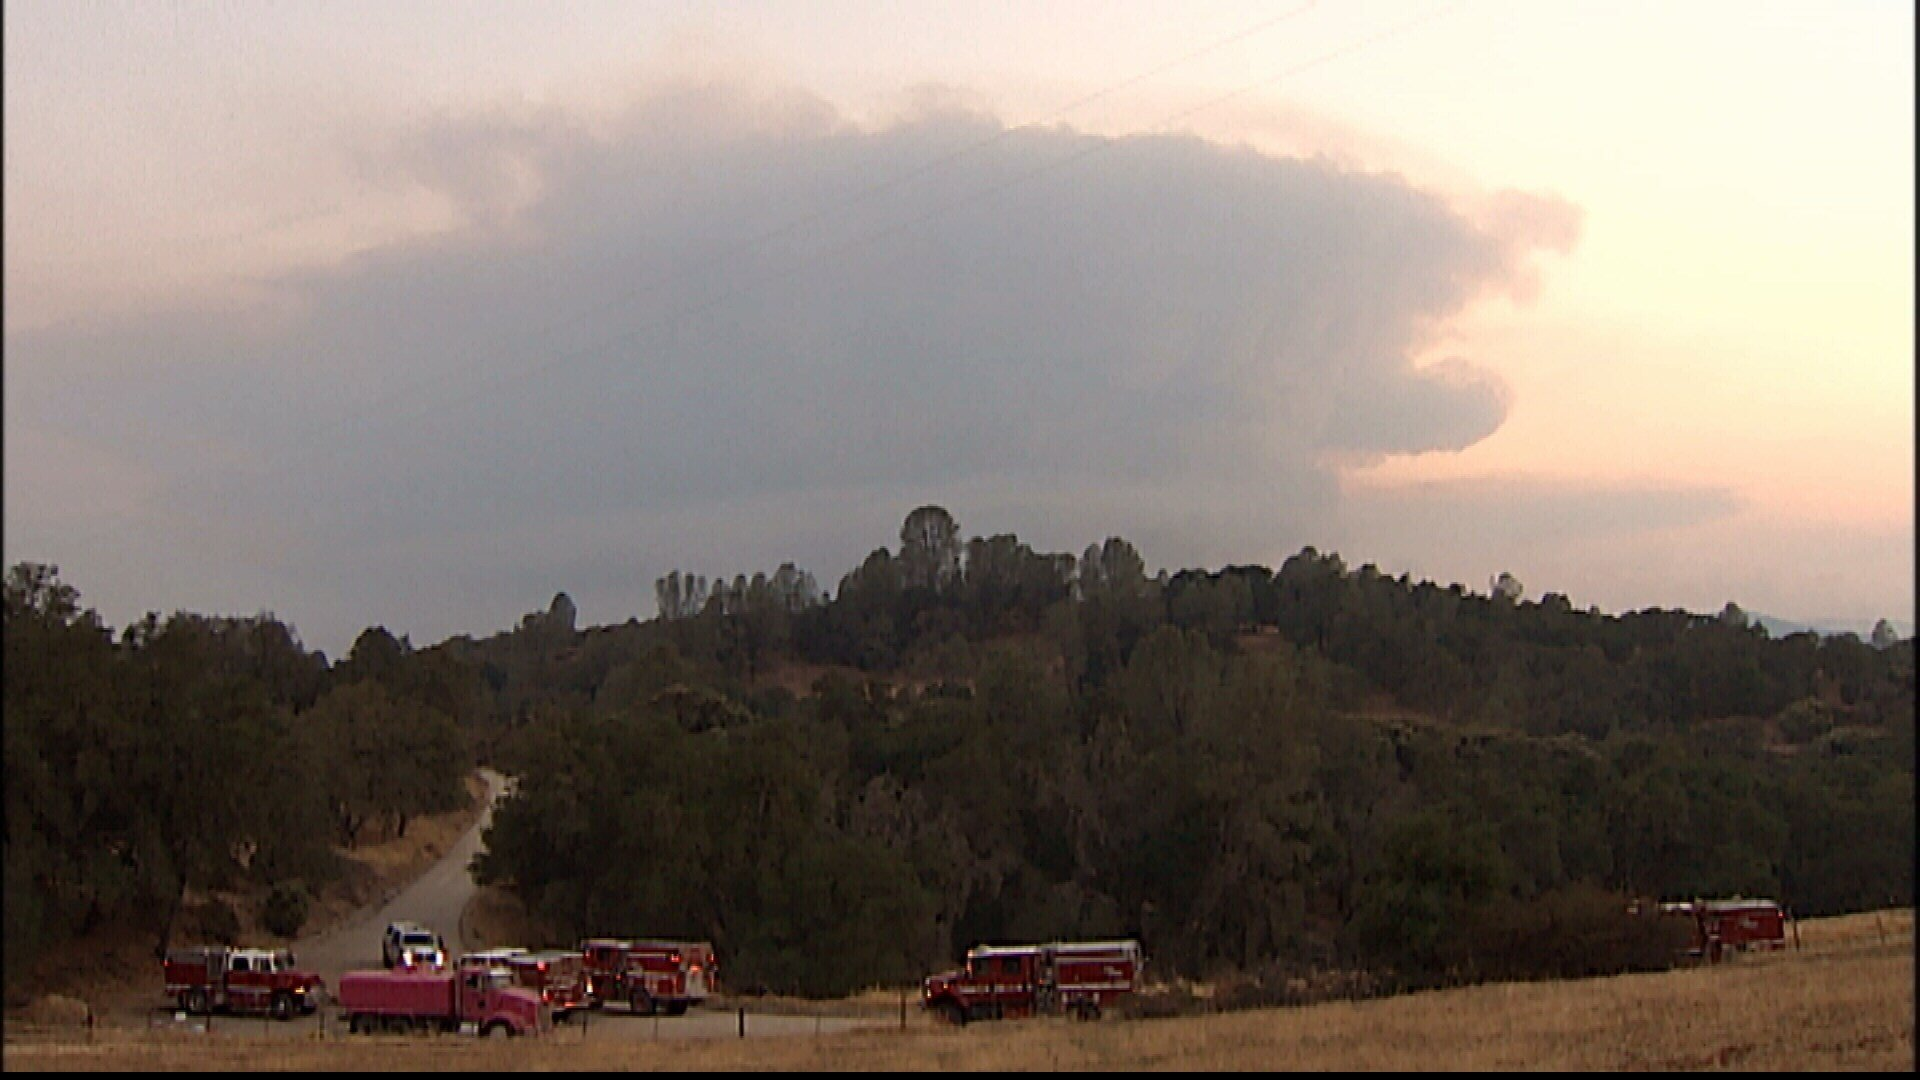 Firefighters continue progress against wildfire